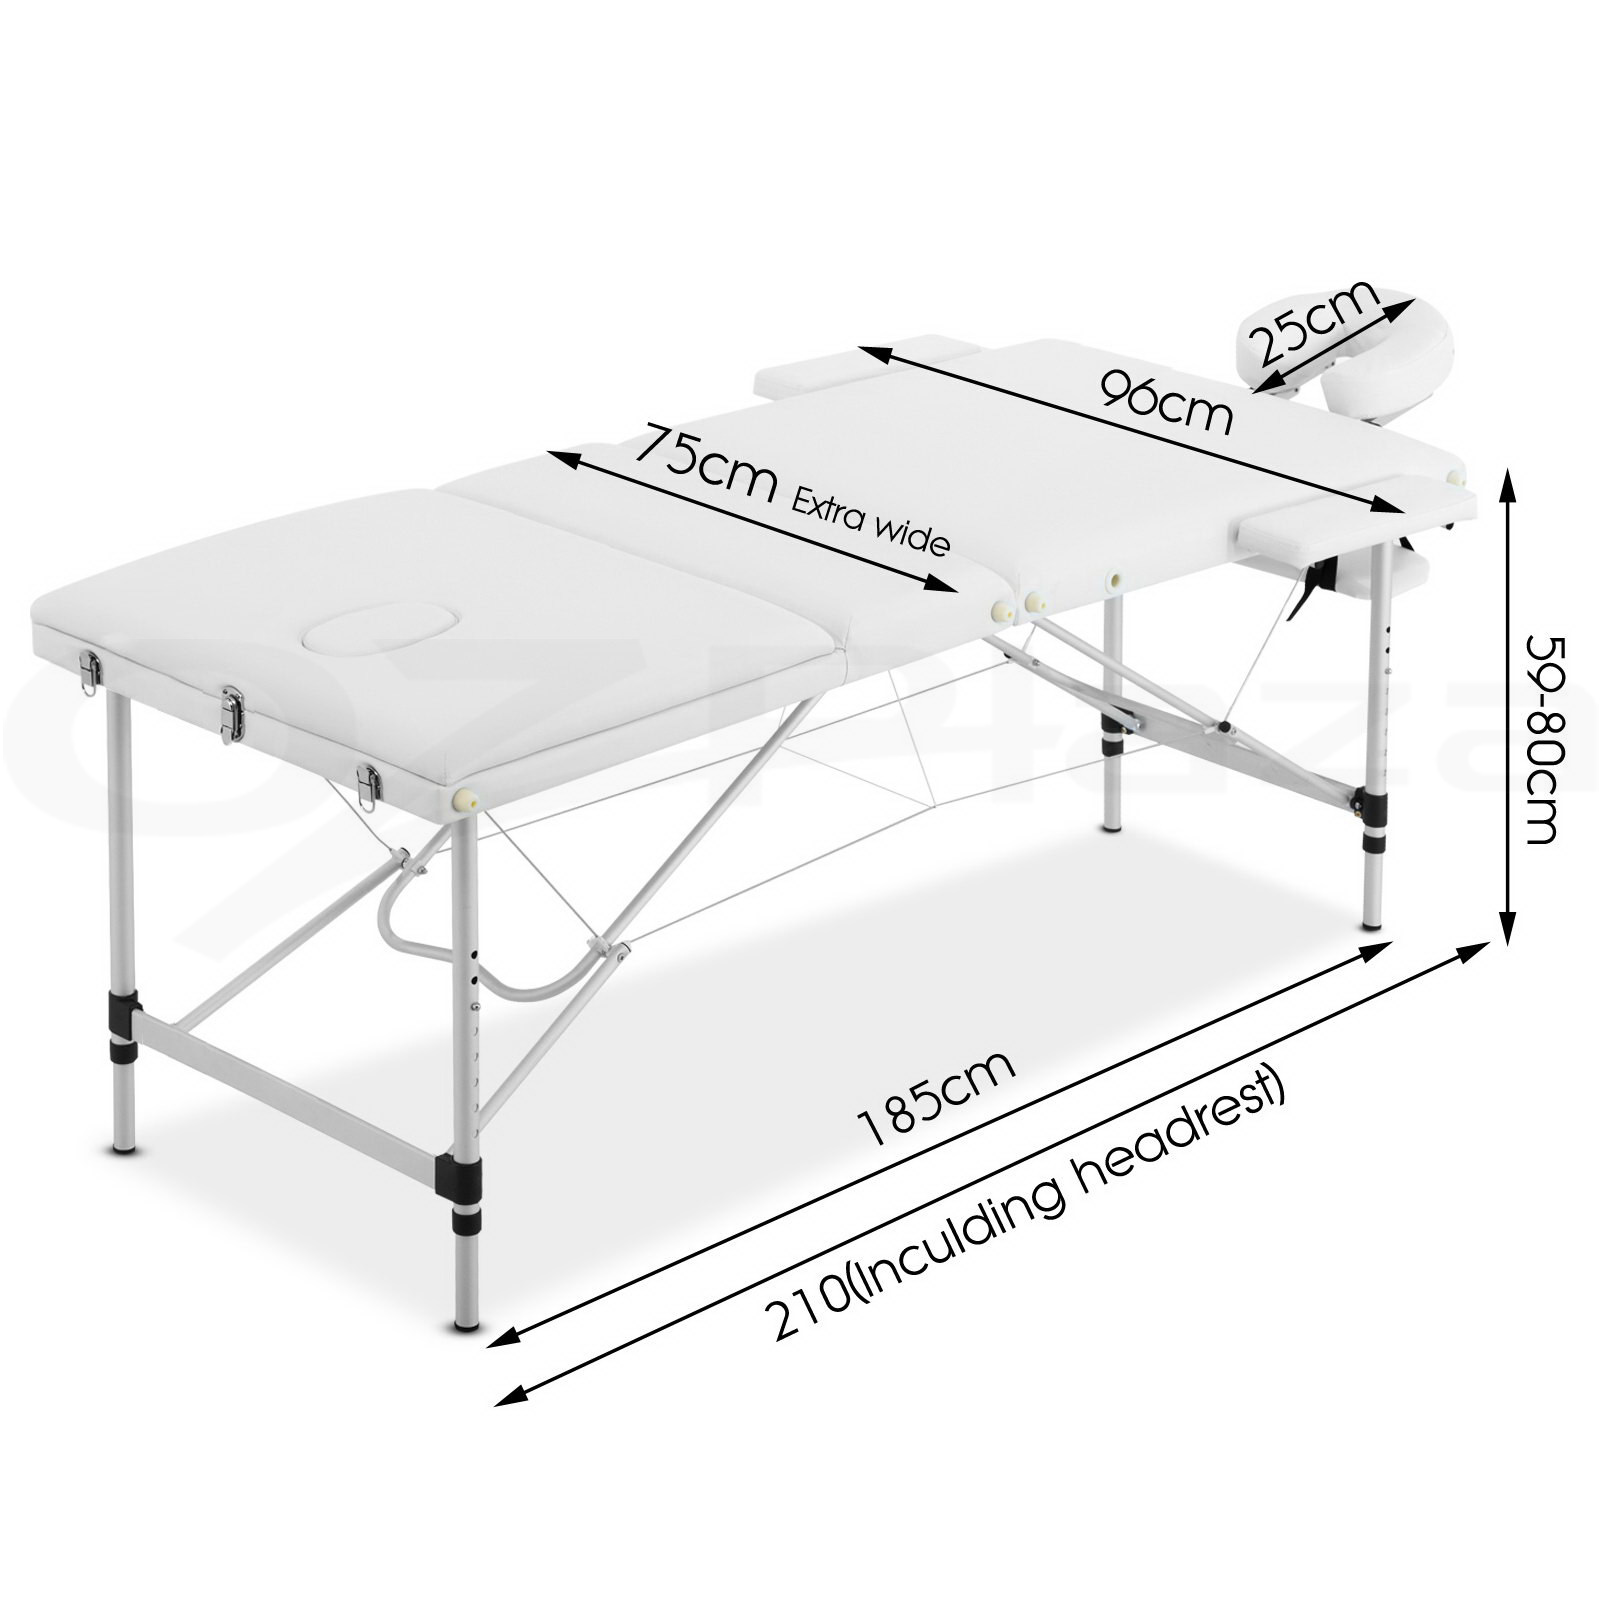 Zenses-Portable-Aluminium-Wooden-Massage-Table-3-Fold-Bed-Therapy-60-70-75-80